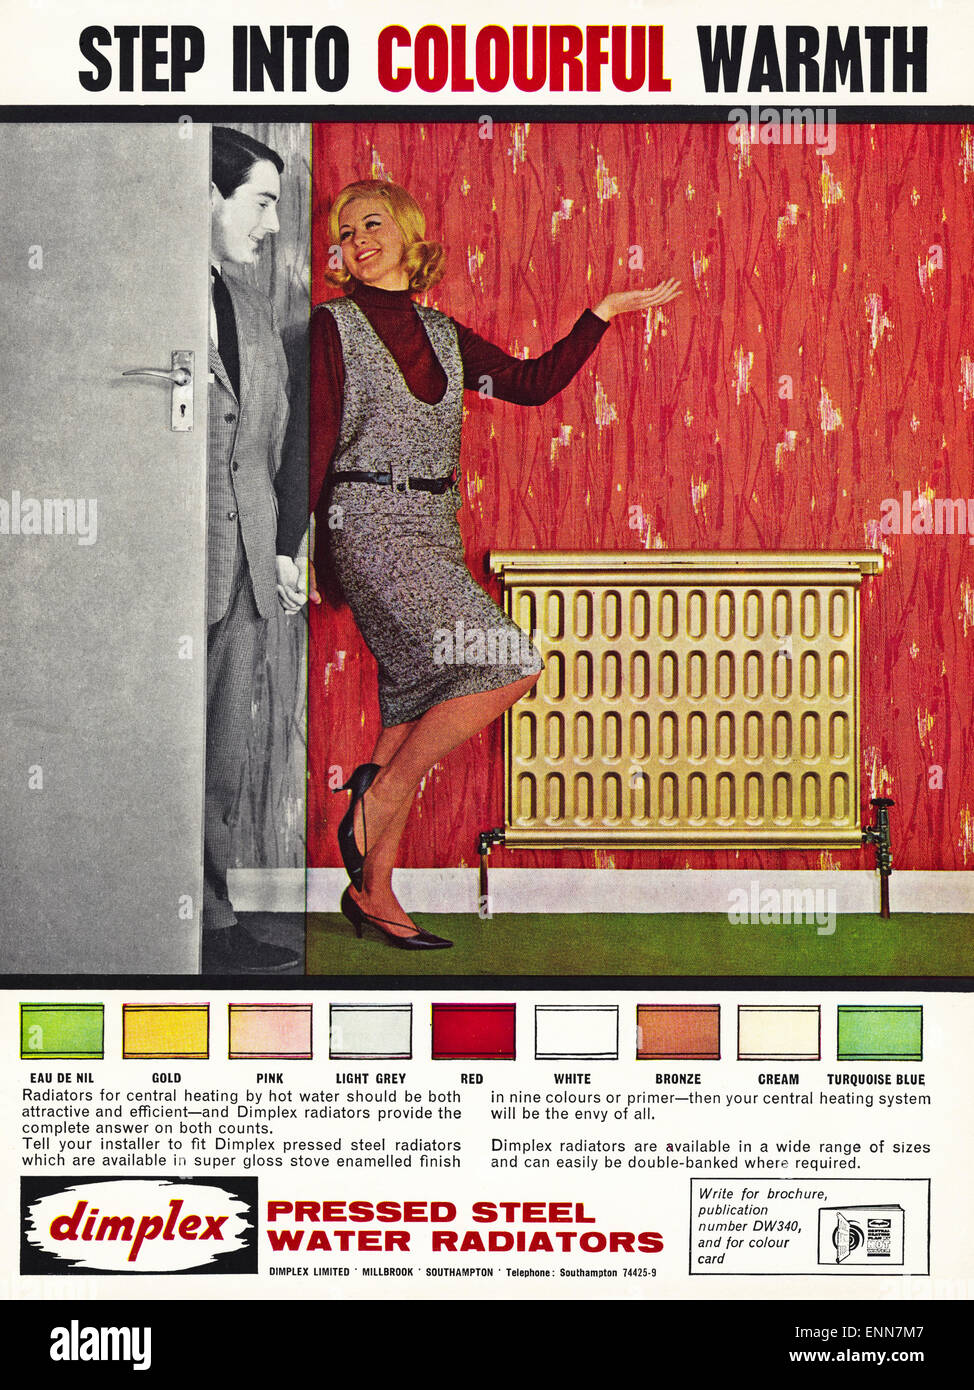 Vintage advert in 1960s magazine dated 1964 for DIMPLEX pressed steel water radiators of Southampton England UK - Stock Image